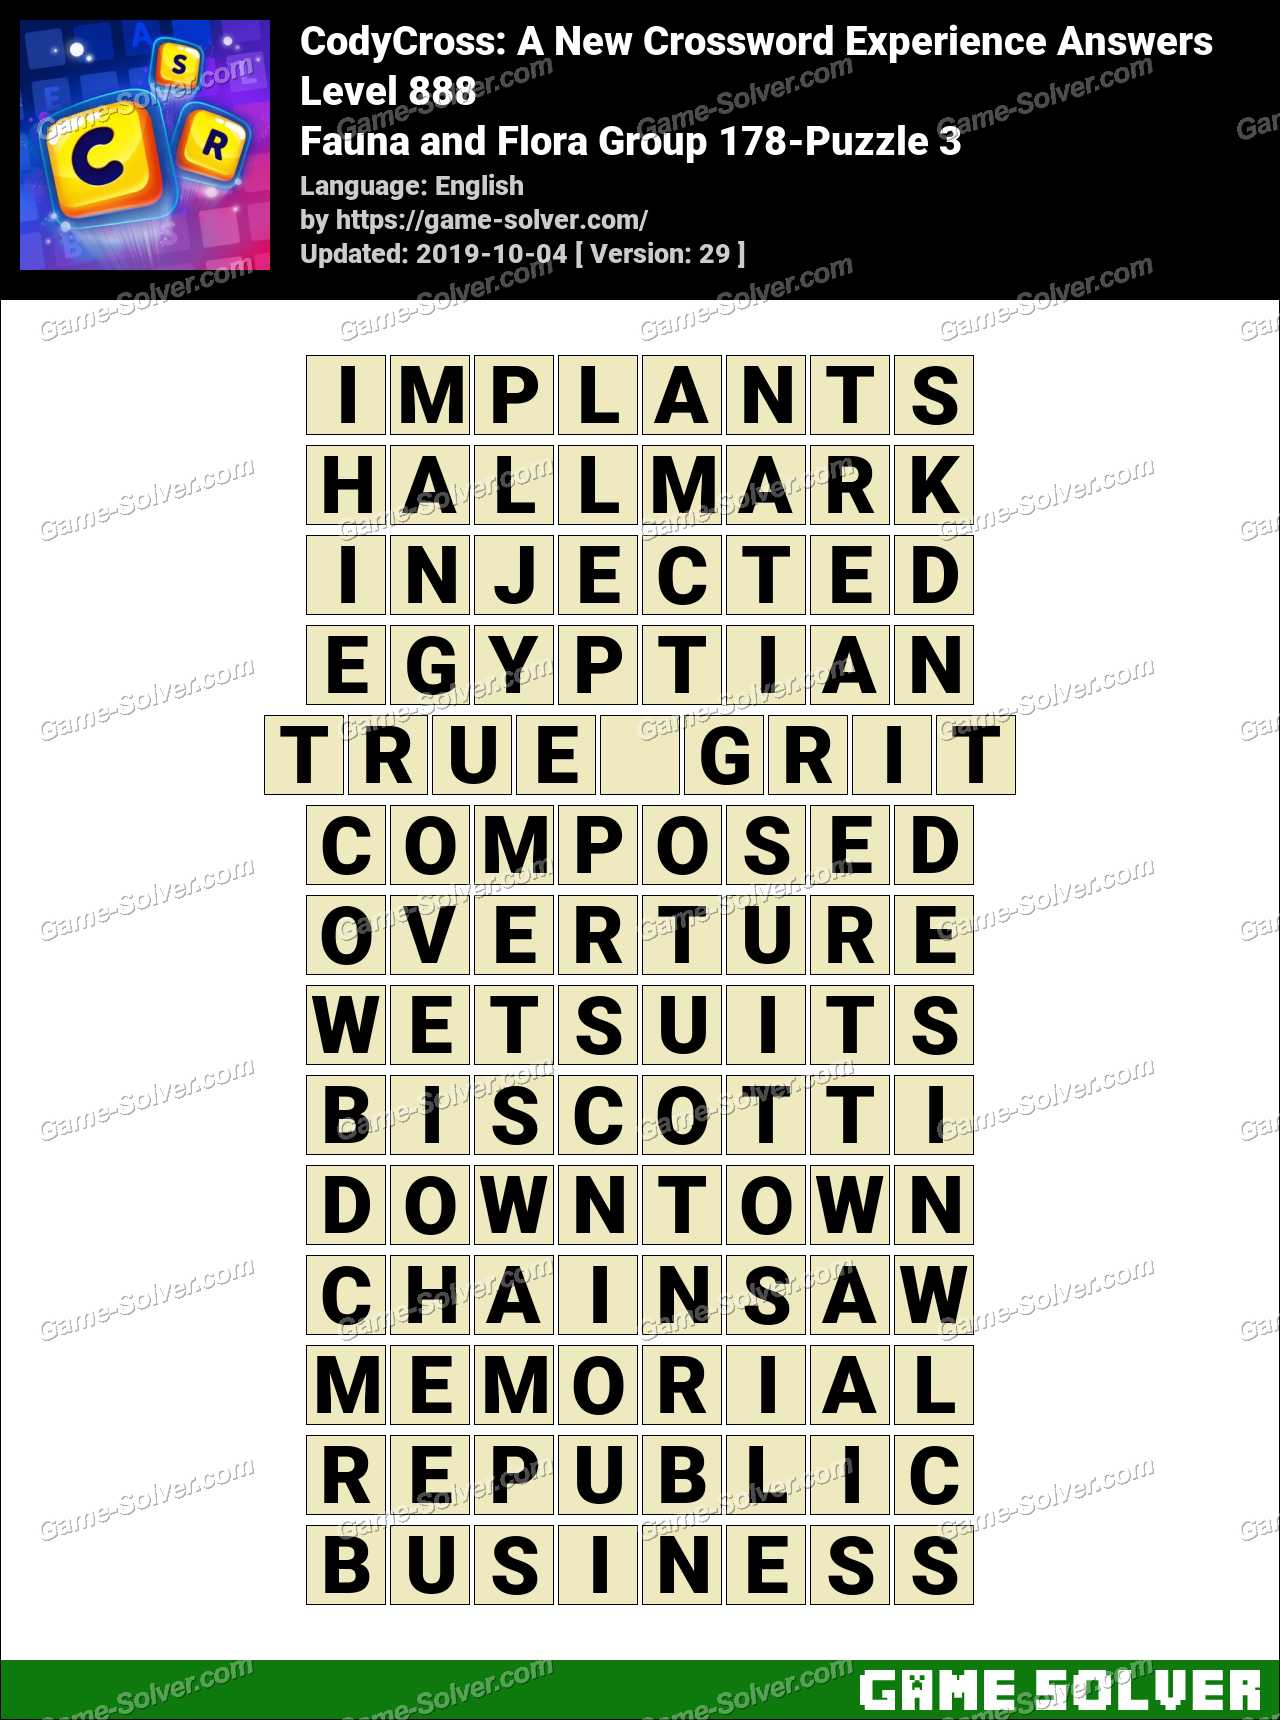 CodyCross Fauna and Flora Group 178-Puzzle 3 Answers